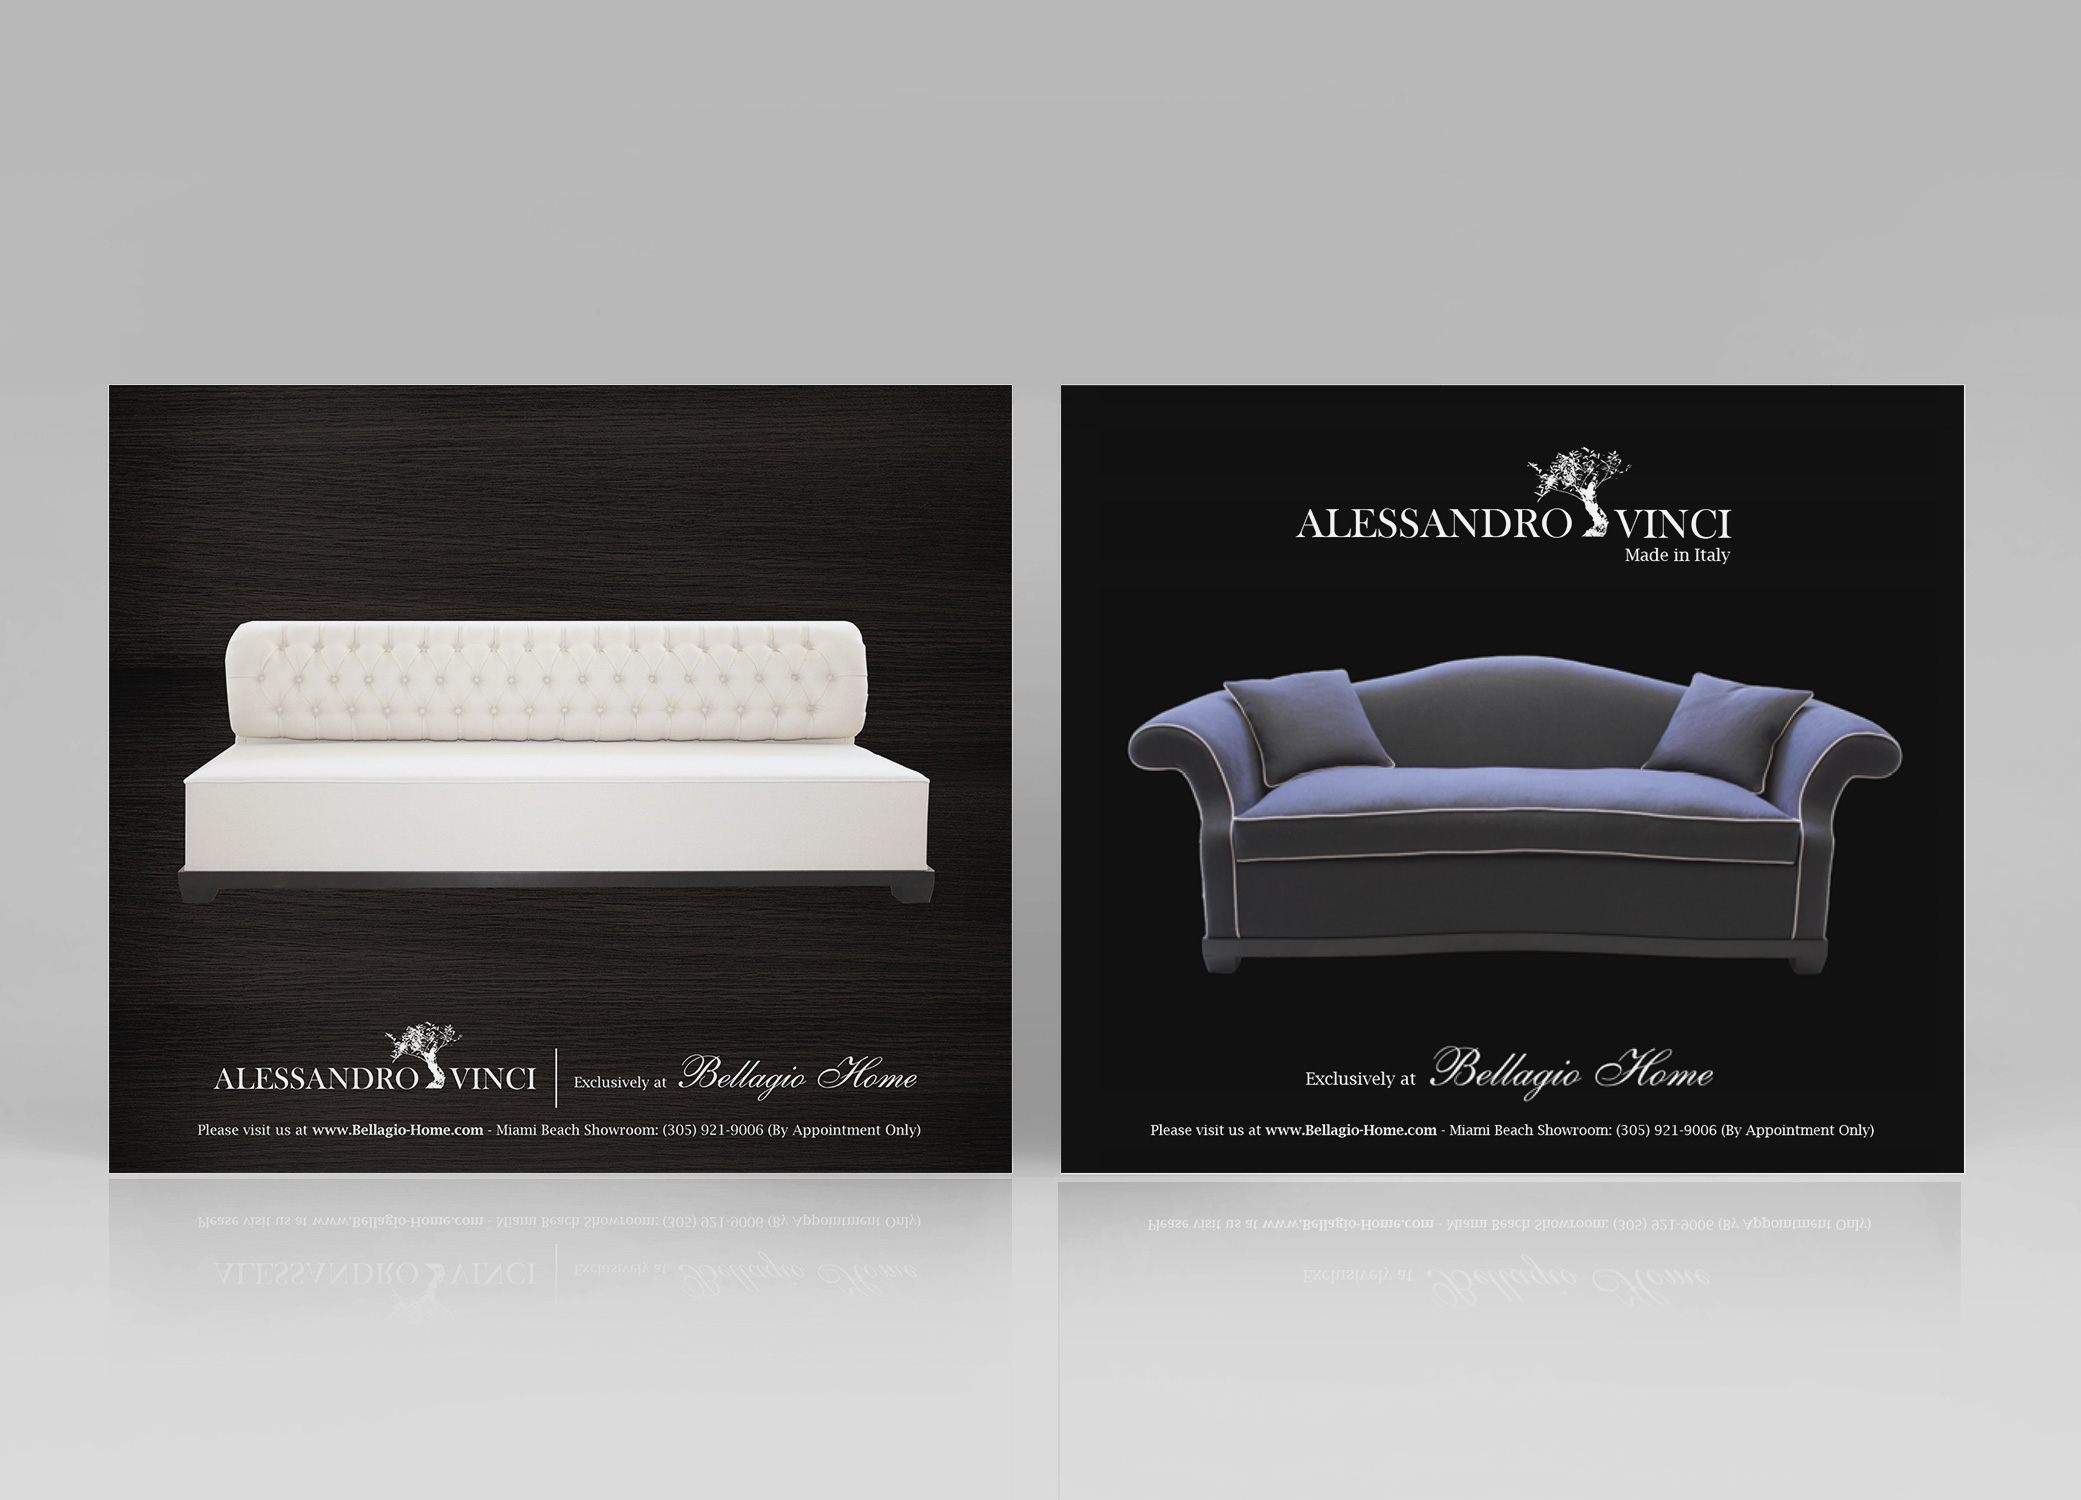 Bellagio Home Ad designs for American Lifestyle magazine, featuring white and dark blue couches against back paper.